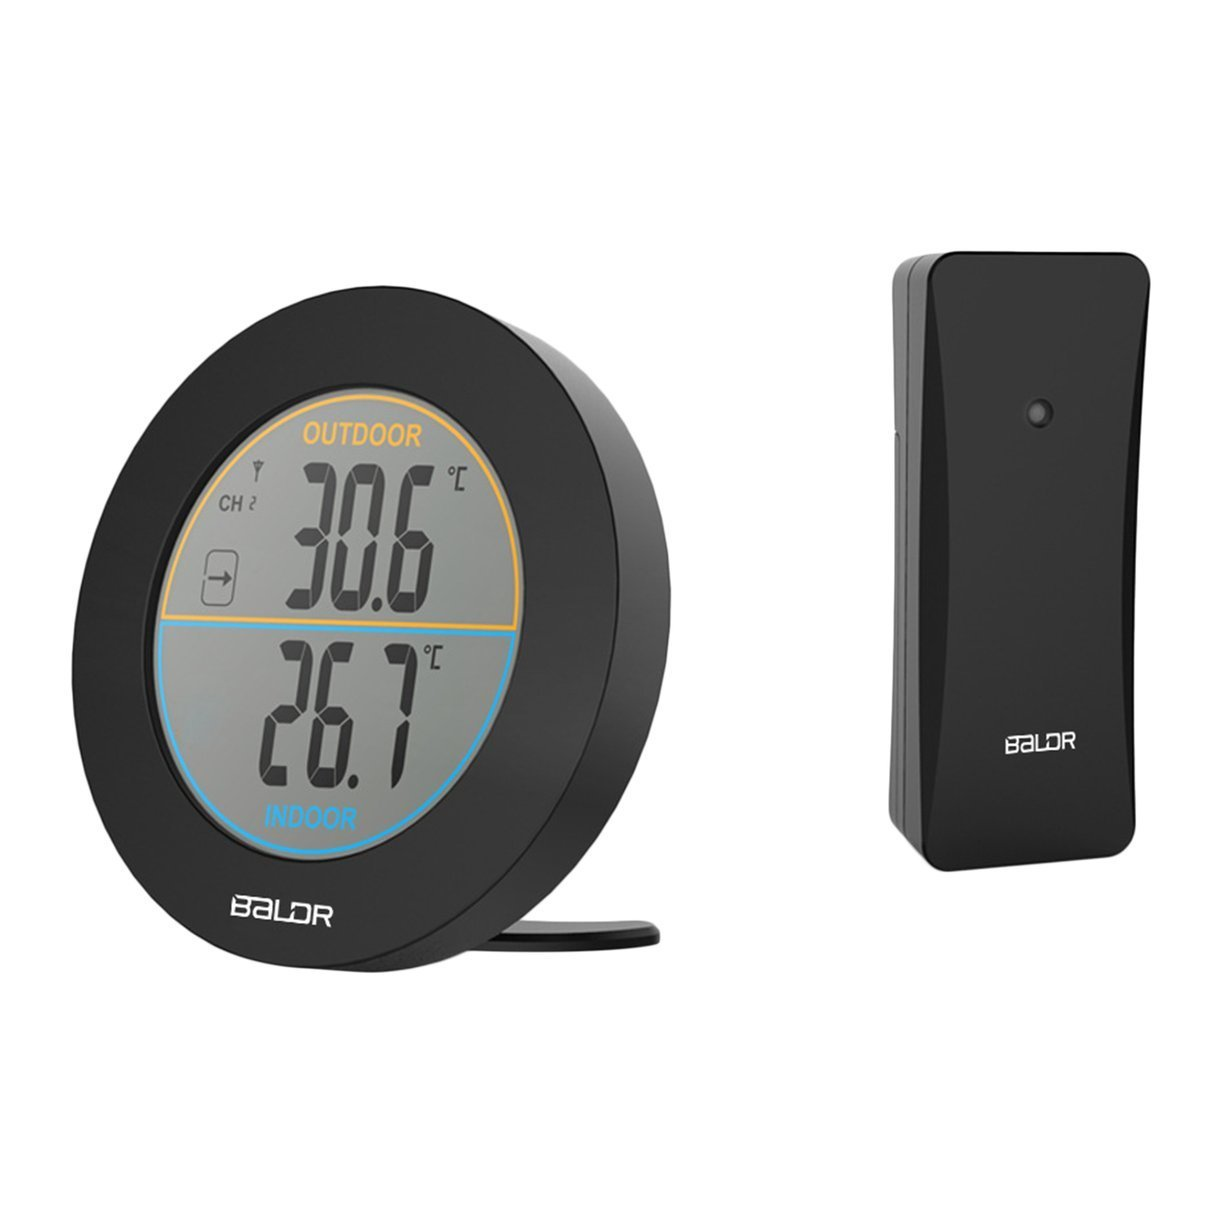 Baldr Round Shape Wireless Thermometer Table Indoor Outdoor LCD Display Digital Wall Temperature Meter Sensor B0127T2